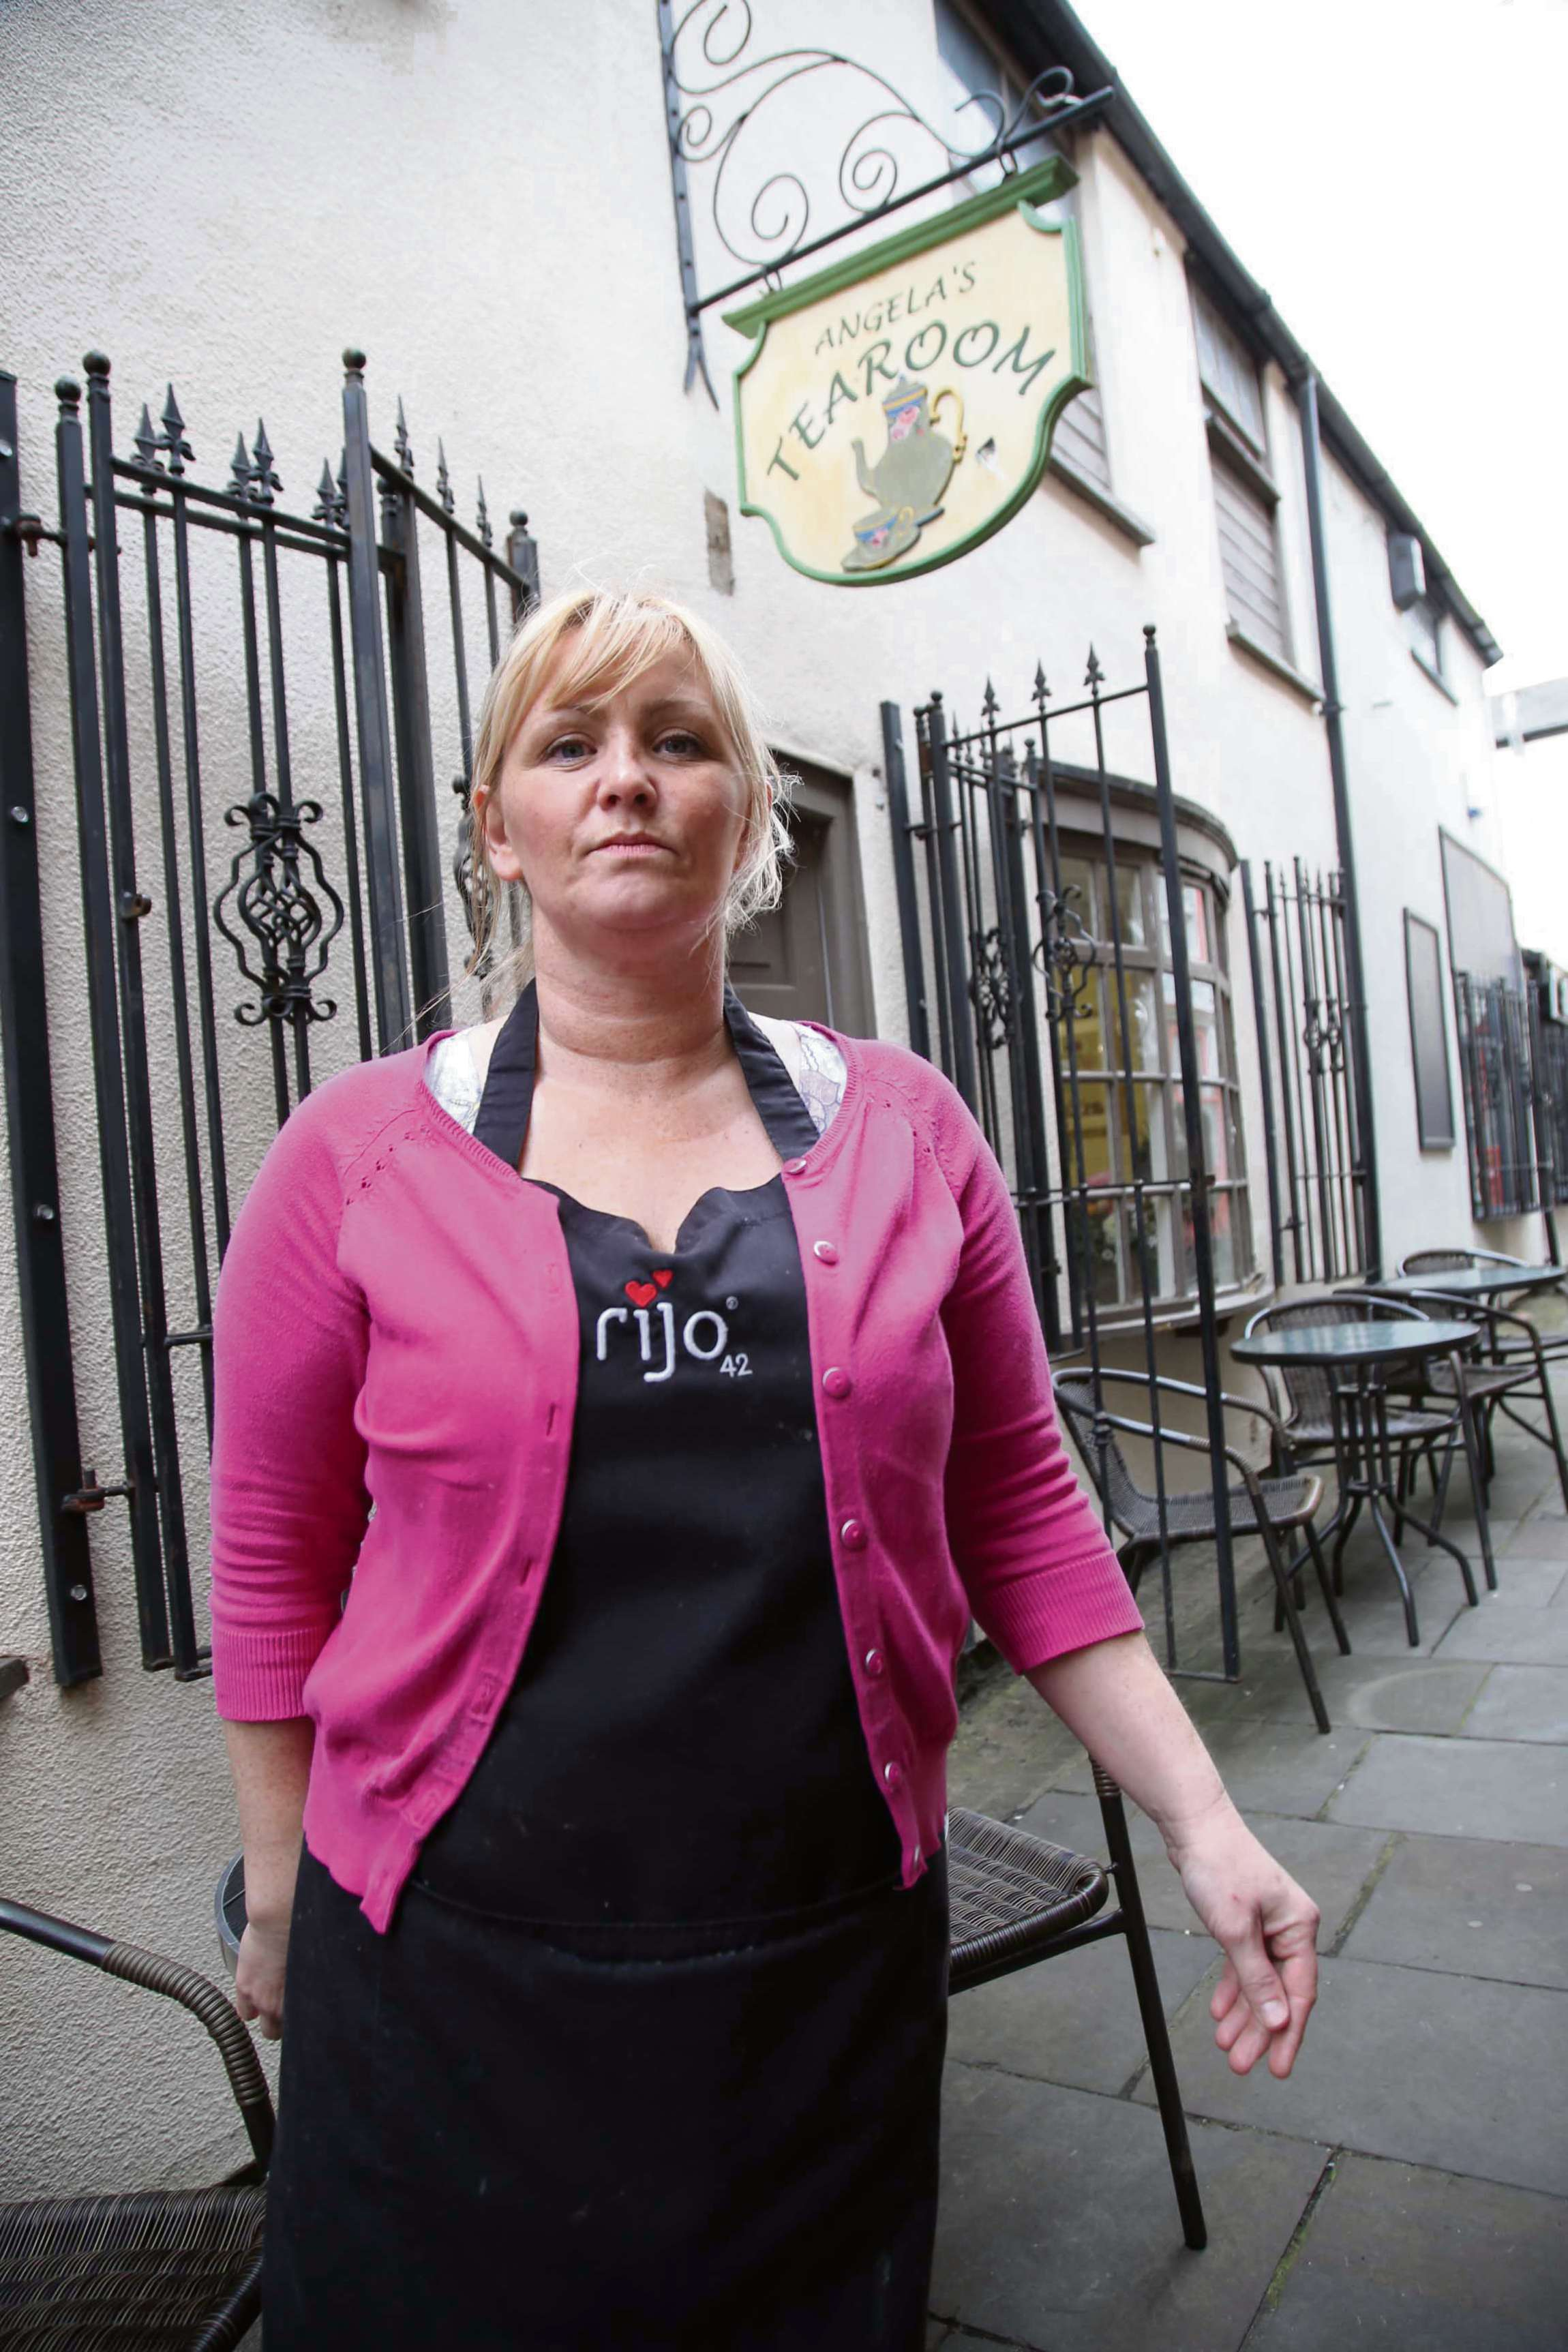 Cafe owner angry over long-running improvement work